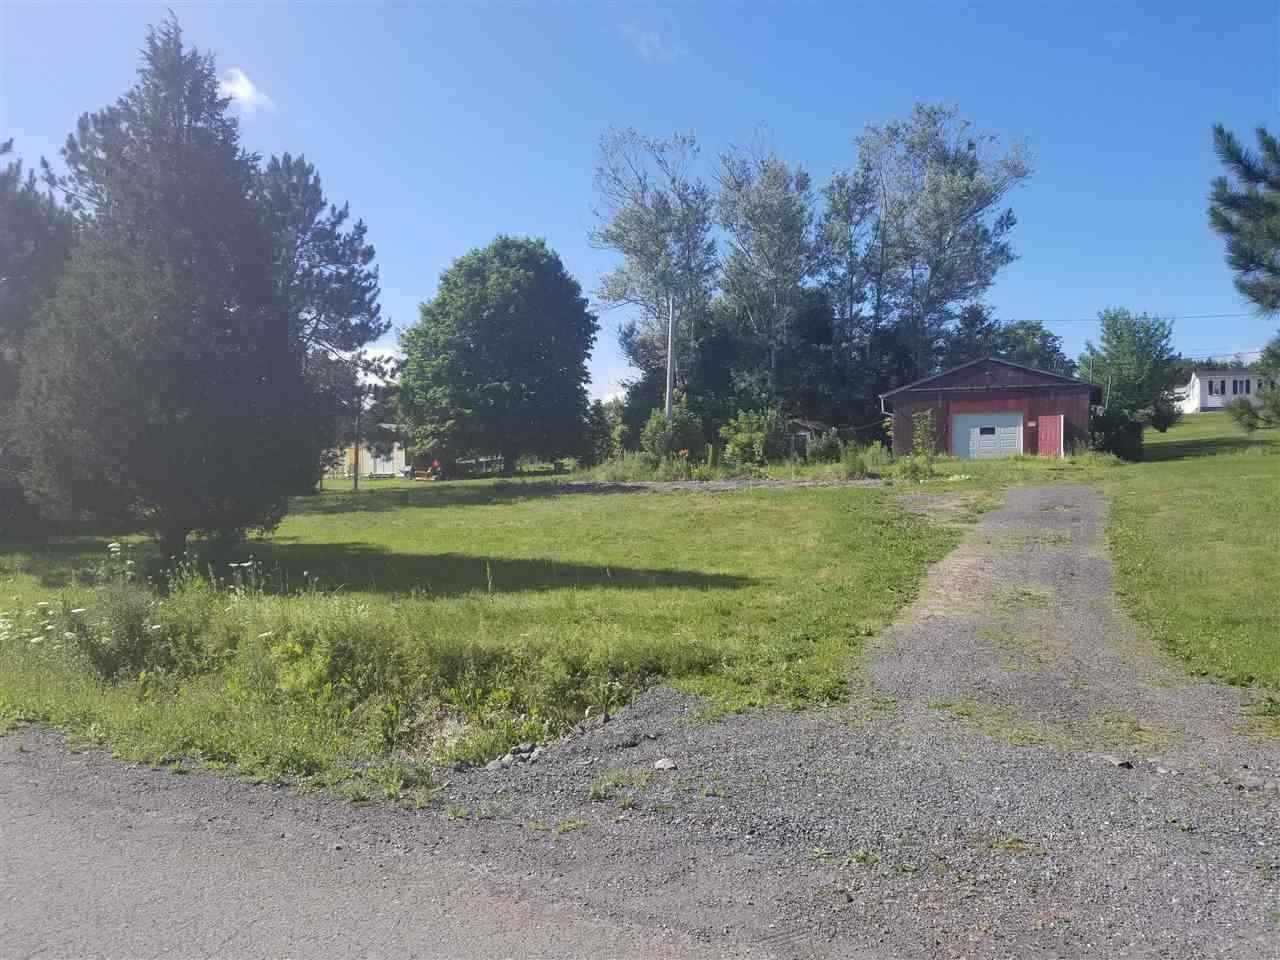 Main Photo: 27 THIRD Street in Mclellans Brook: 108-Rural Pictou County Vacant Land for sale (Northern Region)  : MLS®# 201916523